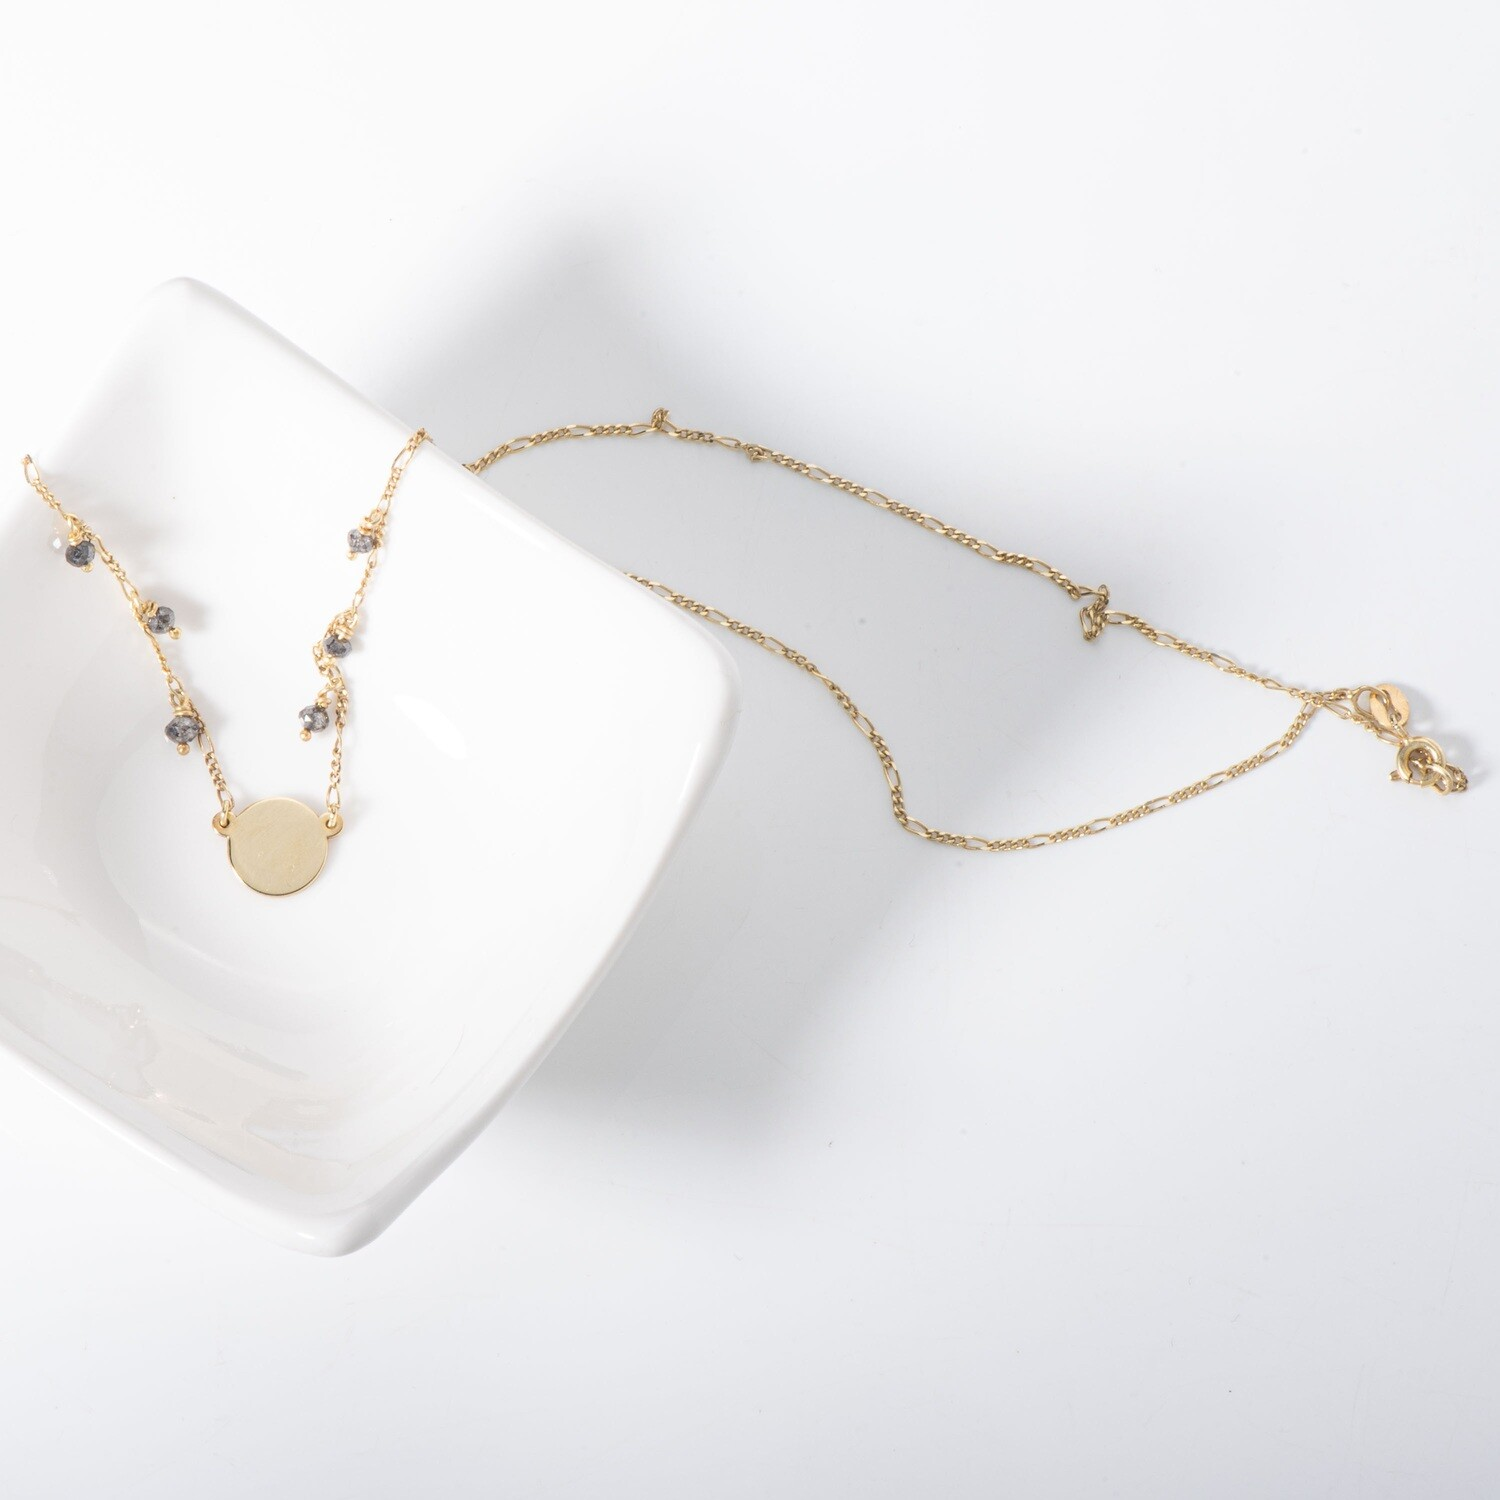 Agape - Solid Gold Necklace